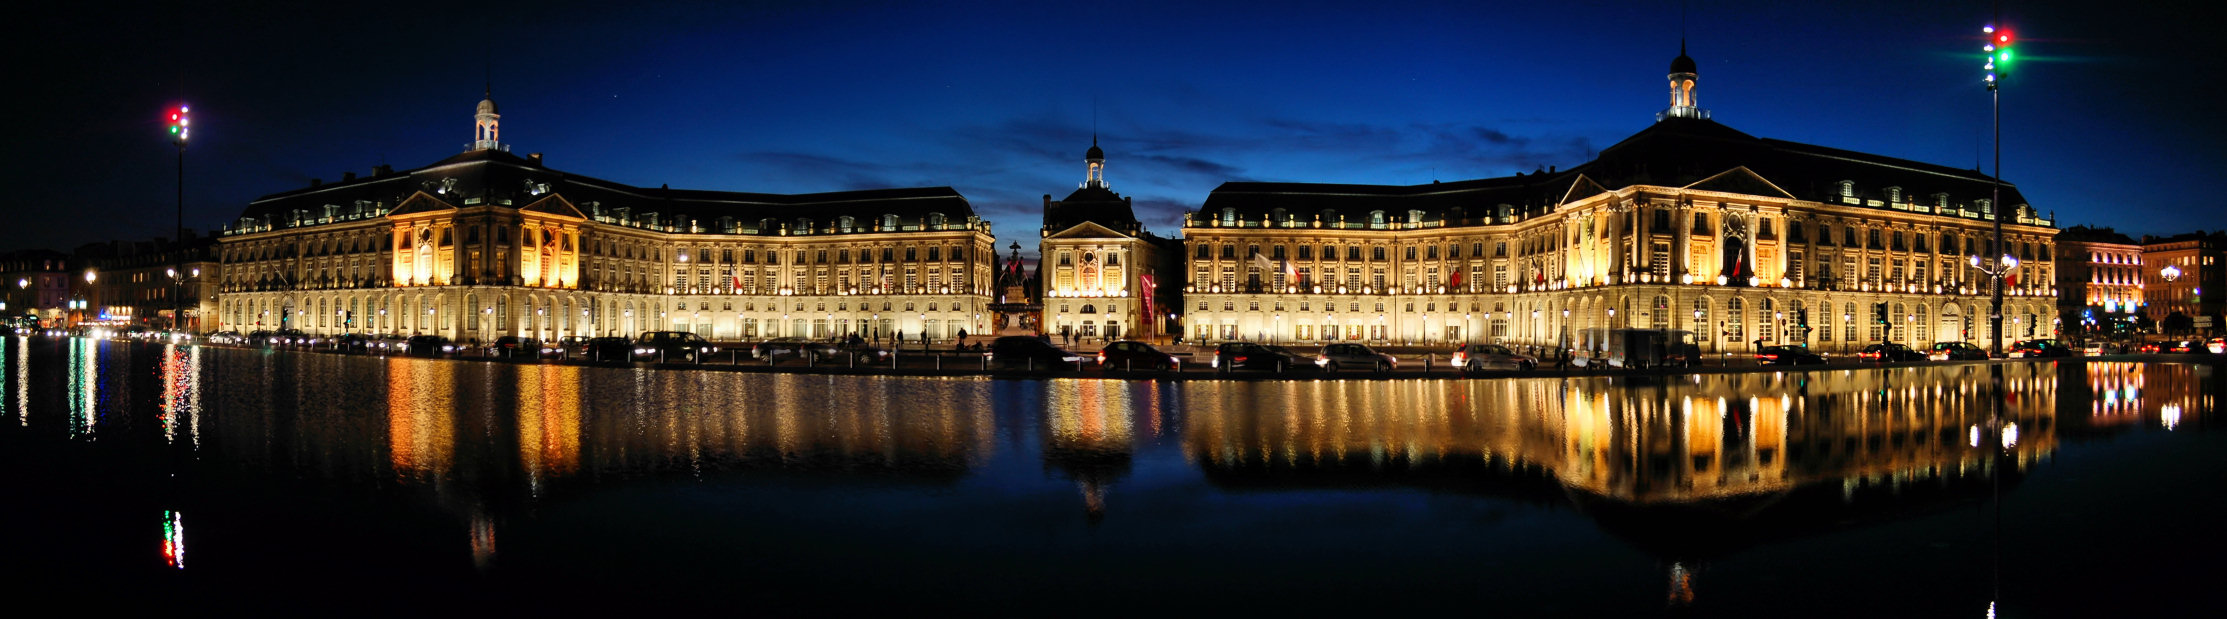 File place de la bourse bordeaux de wikimedia for Miroir d eau